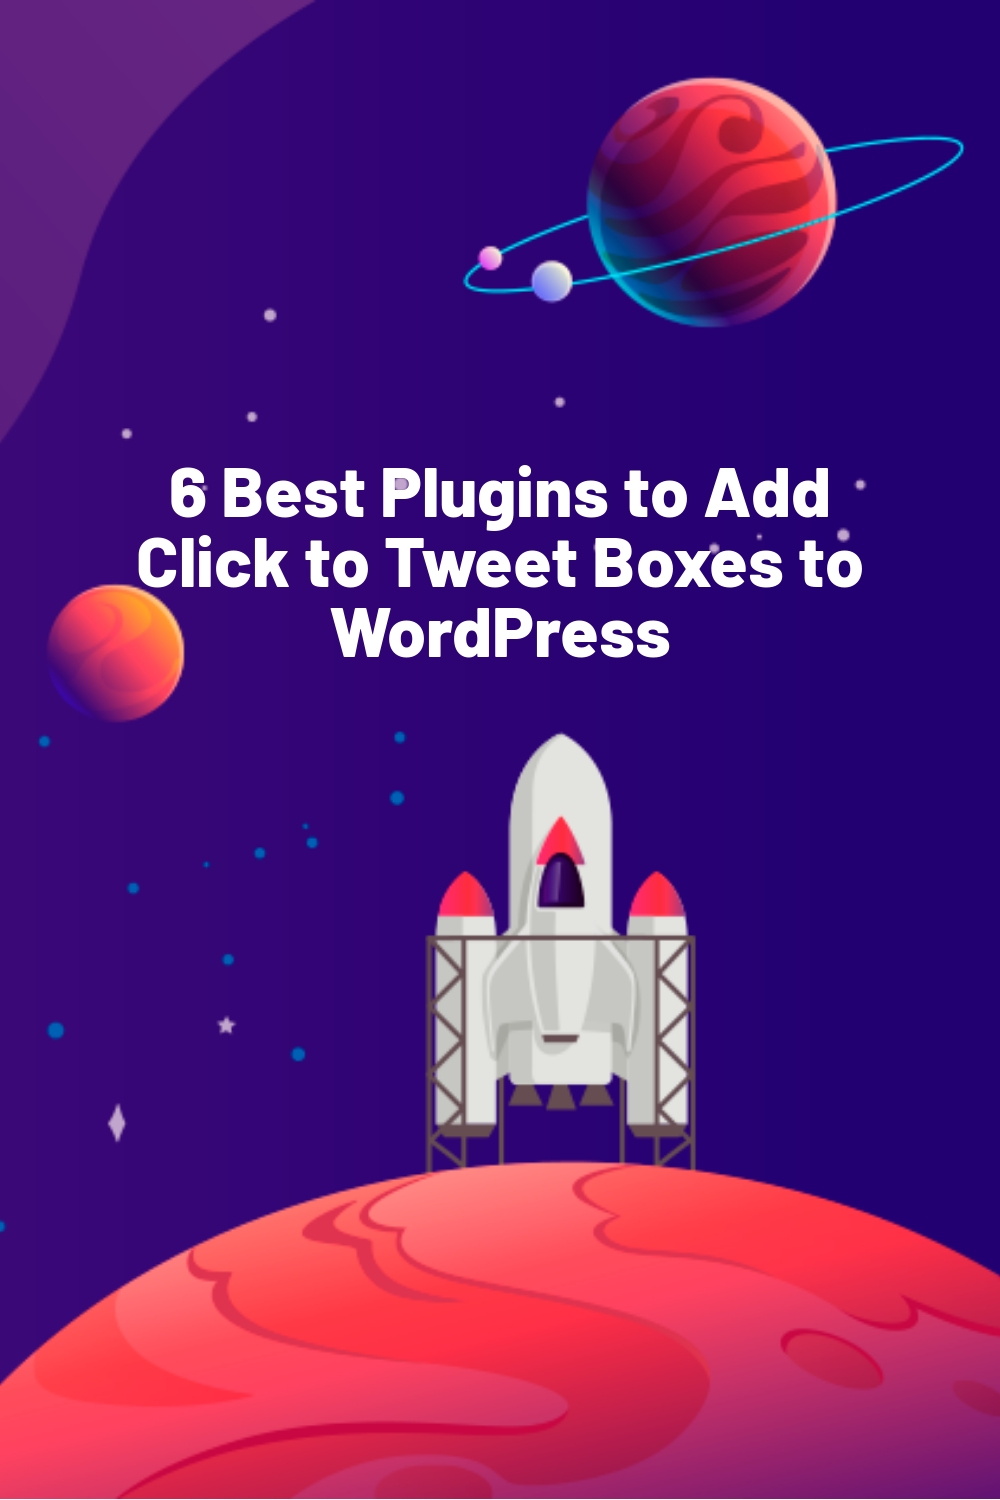 6 Best Plugins to Add Click to Tweet Boxes to WordPress